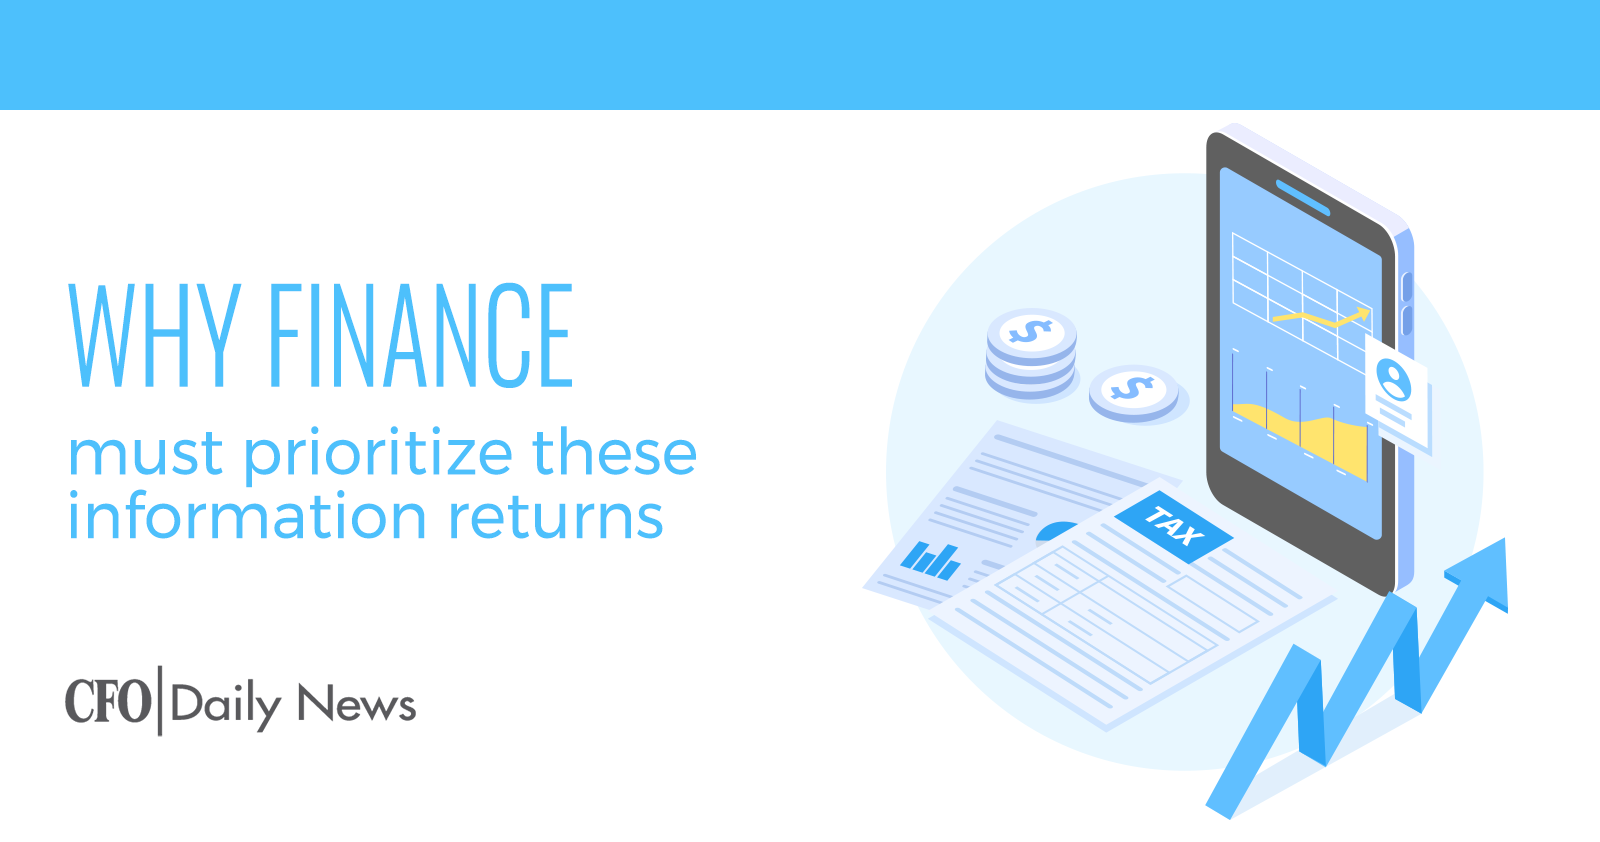 Why Finance Must Prioritize Information Returns